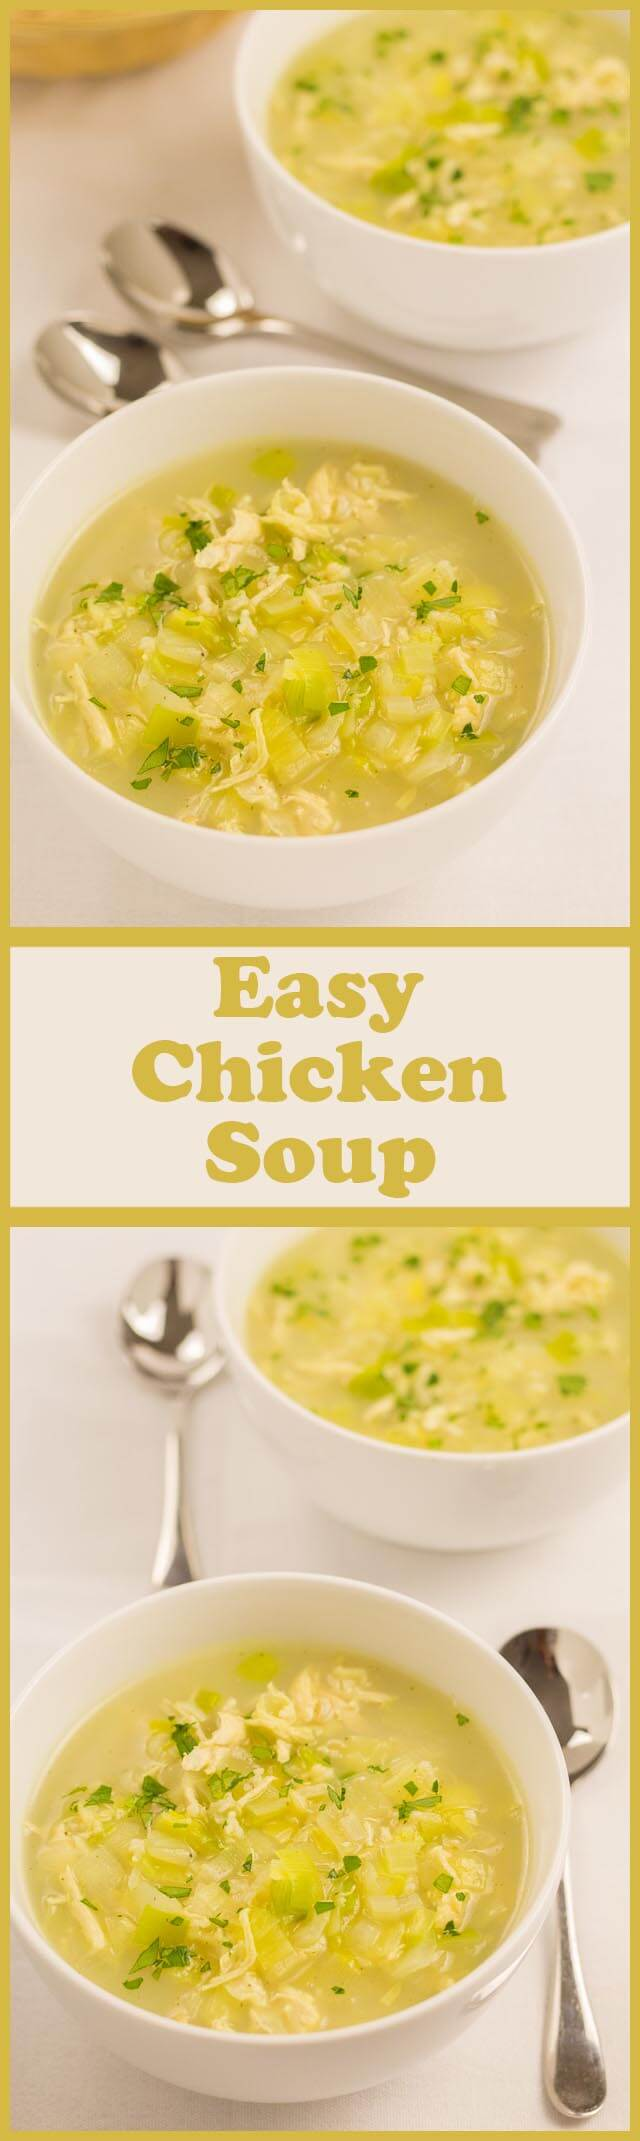 This simple chicken soup recipe is a great quick healthy meal to put together if you don't have the luxury of left over chicken lying about. It's made from just one chicken breast, leek, onion, rice and stock. It's as simple as that. It tastes absolutely delicious and its only 234 calories per serving!